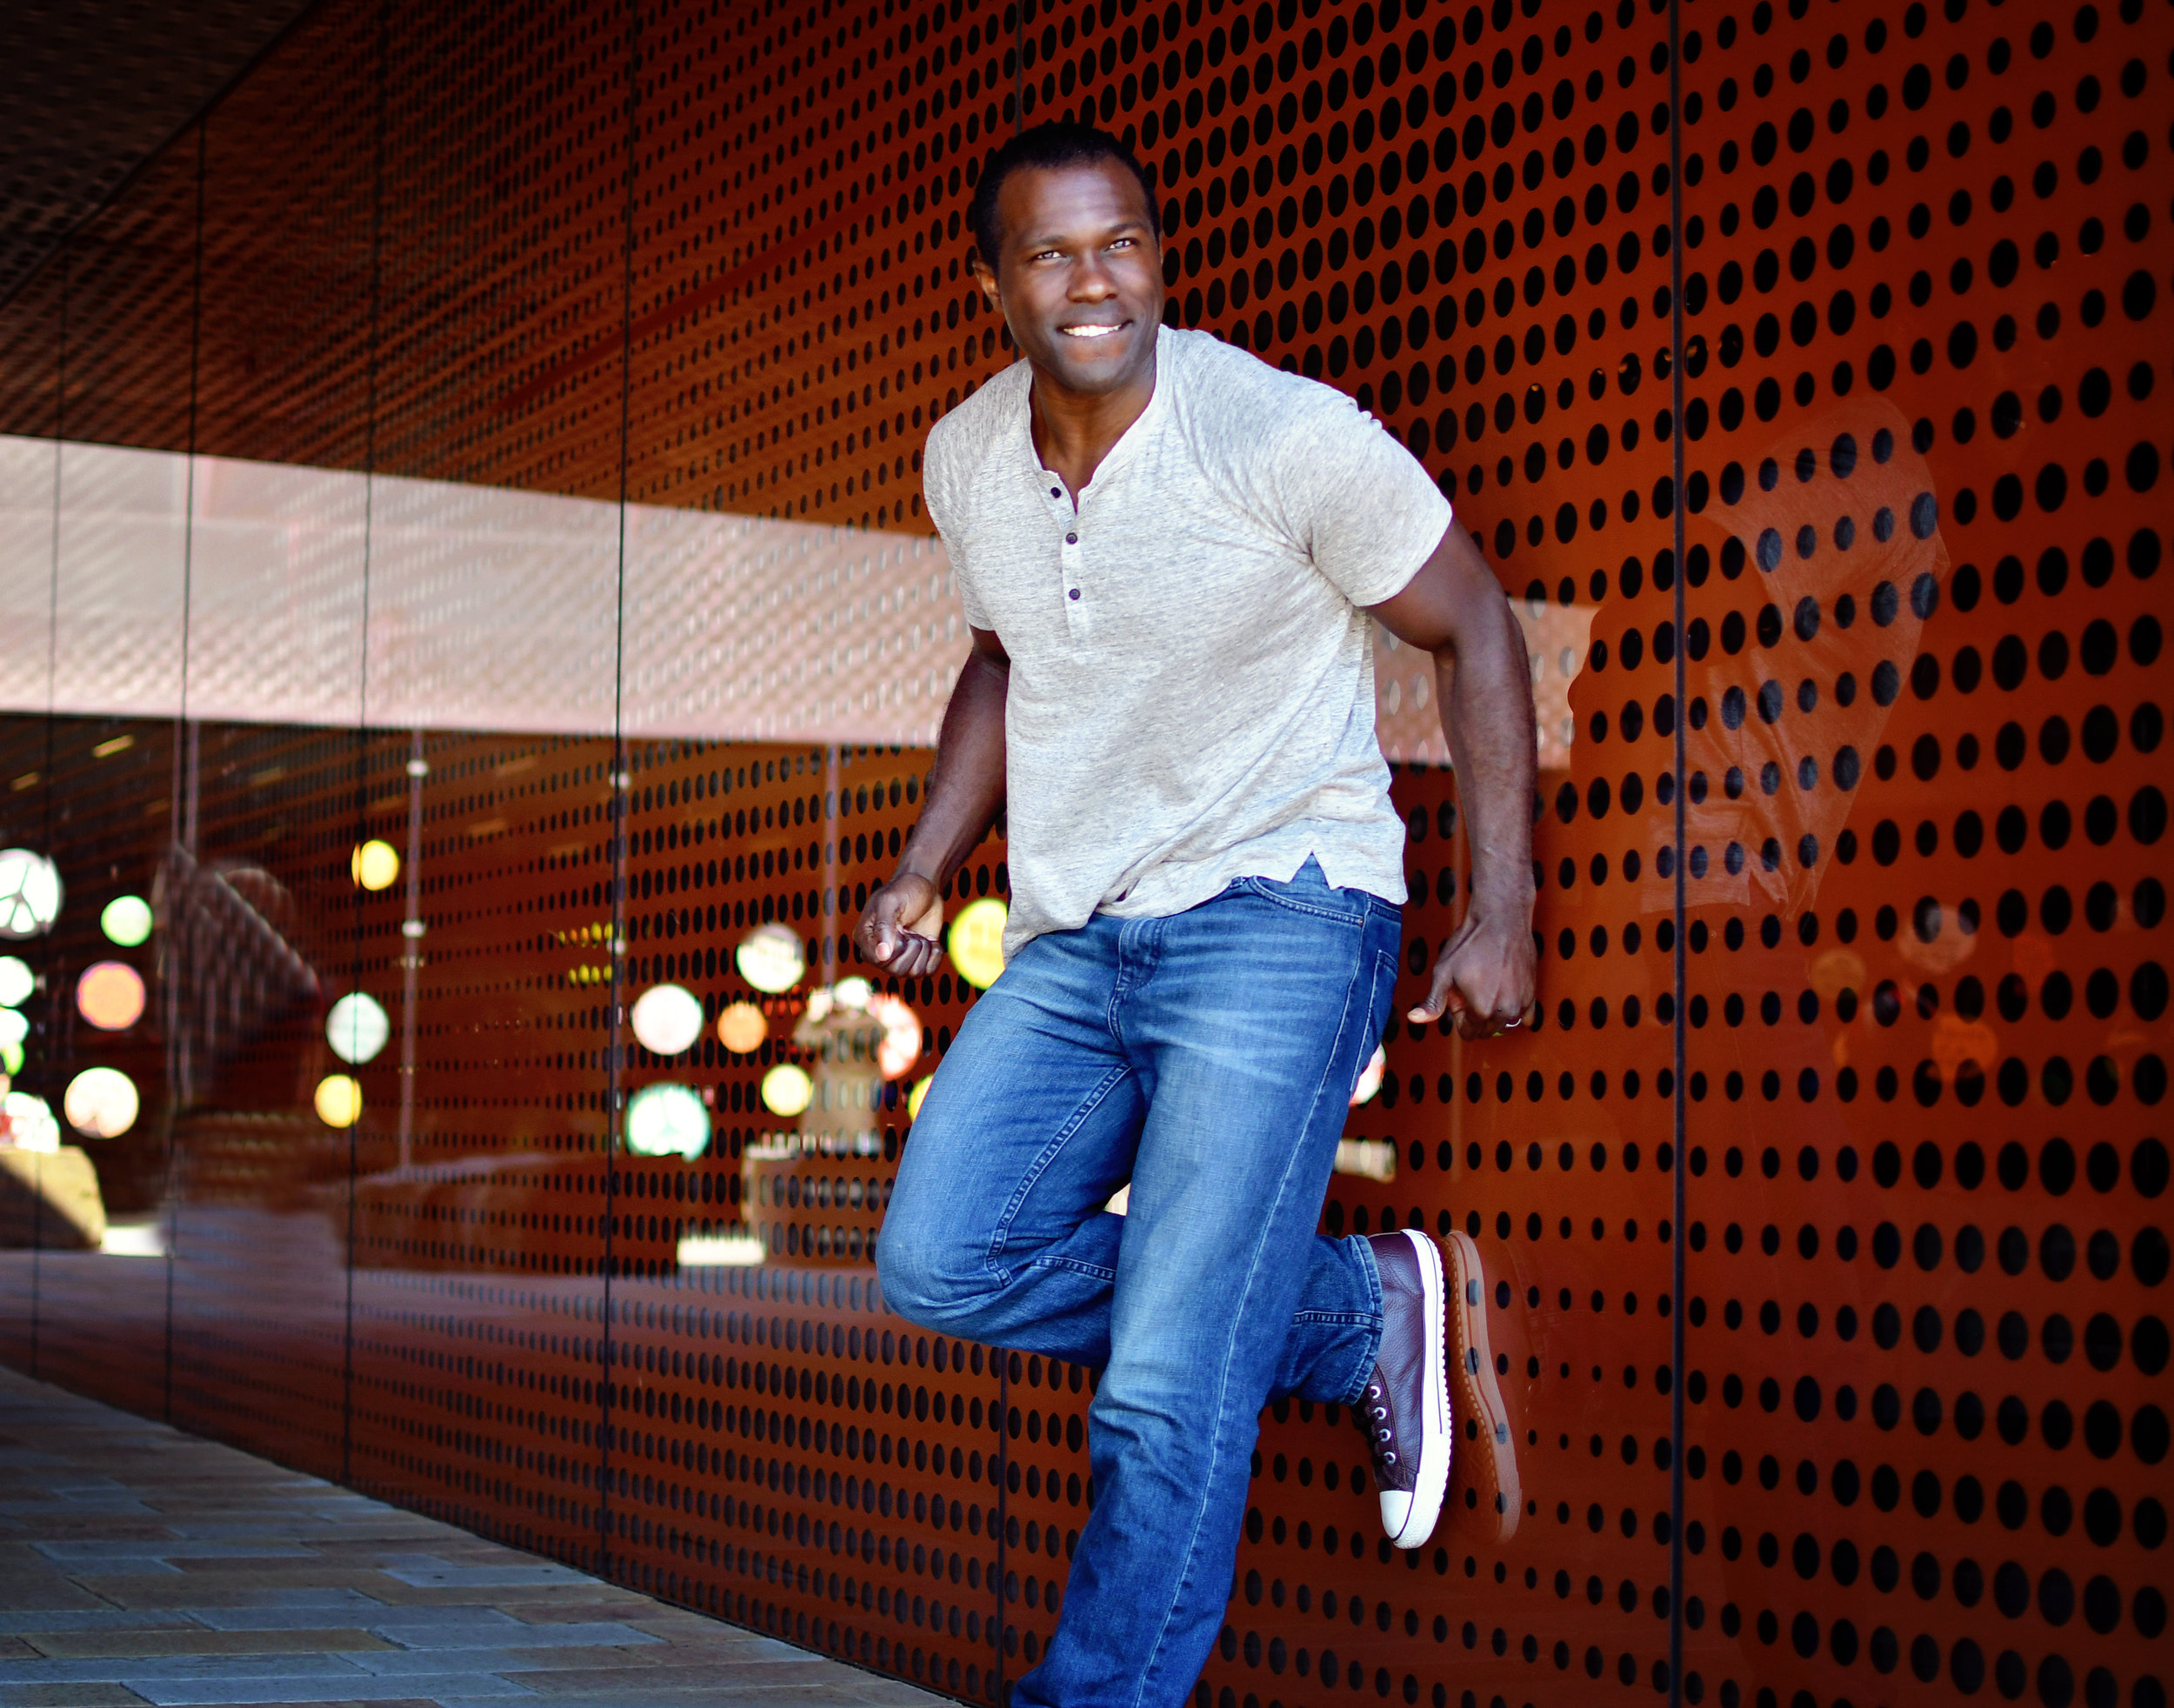 Sooooo much fun shooting star of Hamilton, Joshua Henry. ✨💫 at The De Young Museum in San Francisco yesterday. Photo by @danahargitayphotography  #hamiltonmusical   #hamilton   #joshuahenry  more 📷 to come!   SAN FRANCISCO FASHION PHOTOGRAPHER ,  SAN FRANCISCO EDITORIAL PHOTOGRAPHER ,  DESIGNER BAG ,  FASHION CAMPAIGN SAN FRANCISCO ,  ED ,  SAN FRANCISCO ADVERTISING CAMPAIGN ,  SAN FRANCISCO FASHION CAMPAIGN